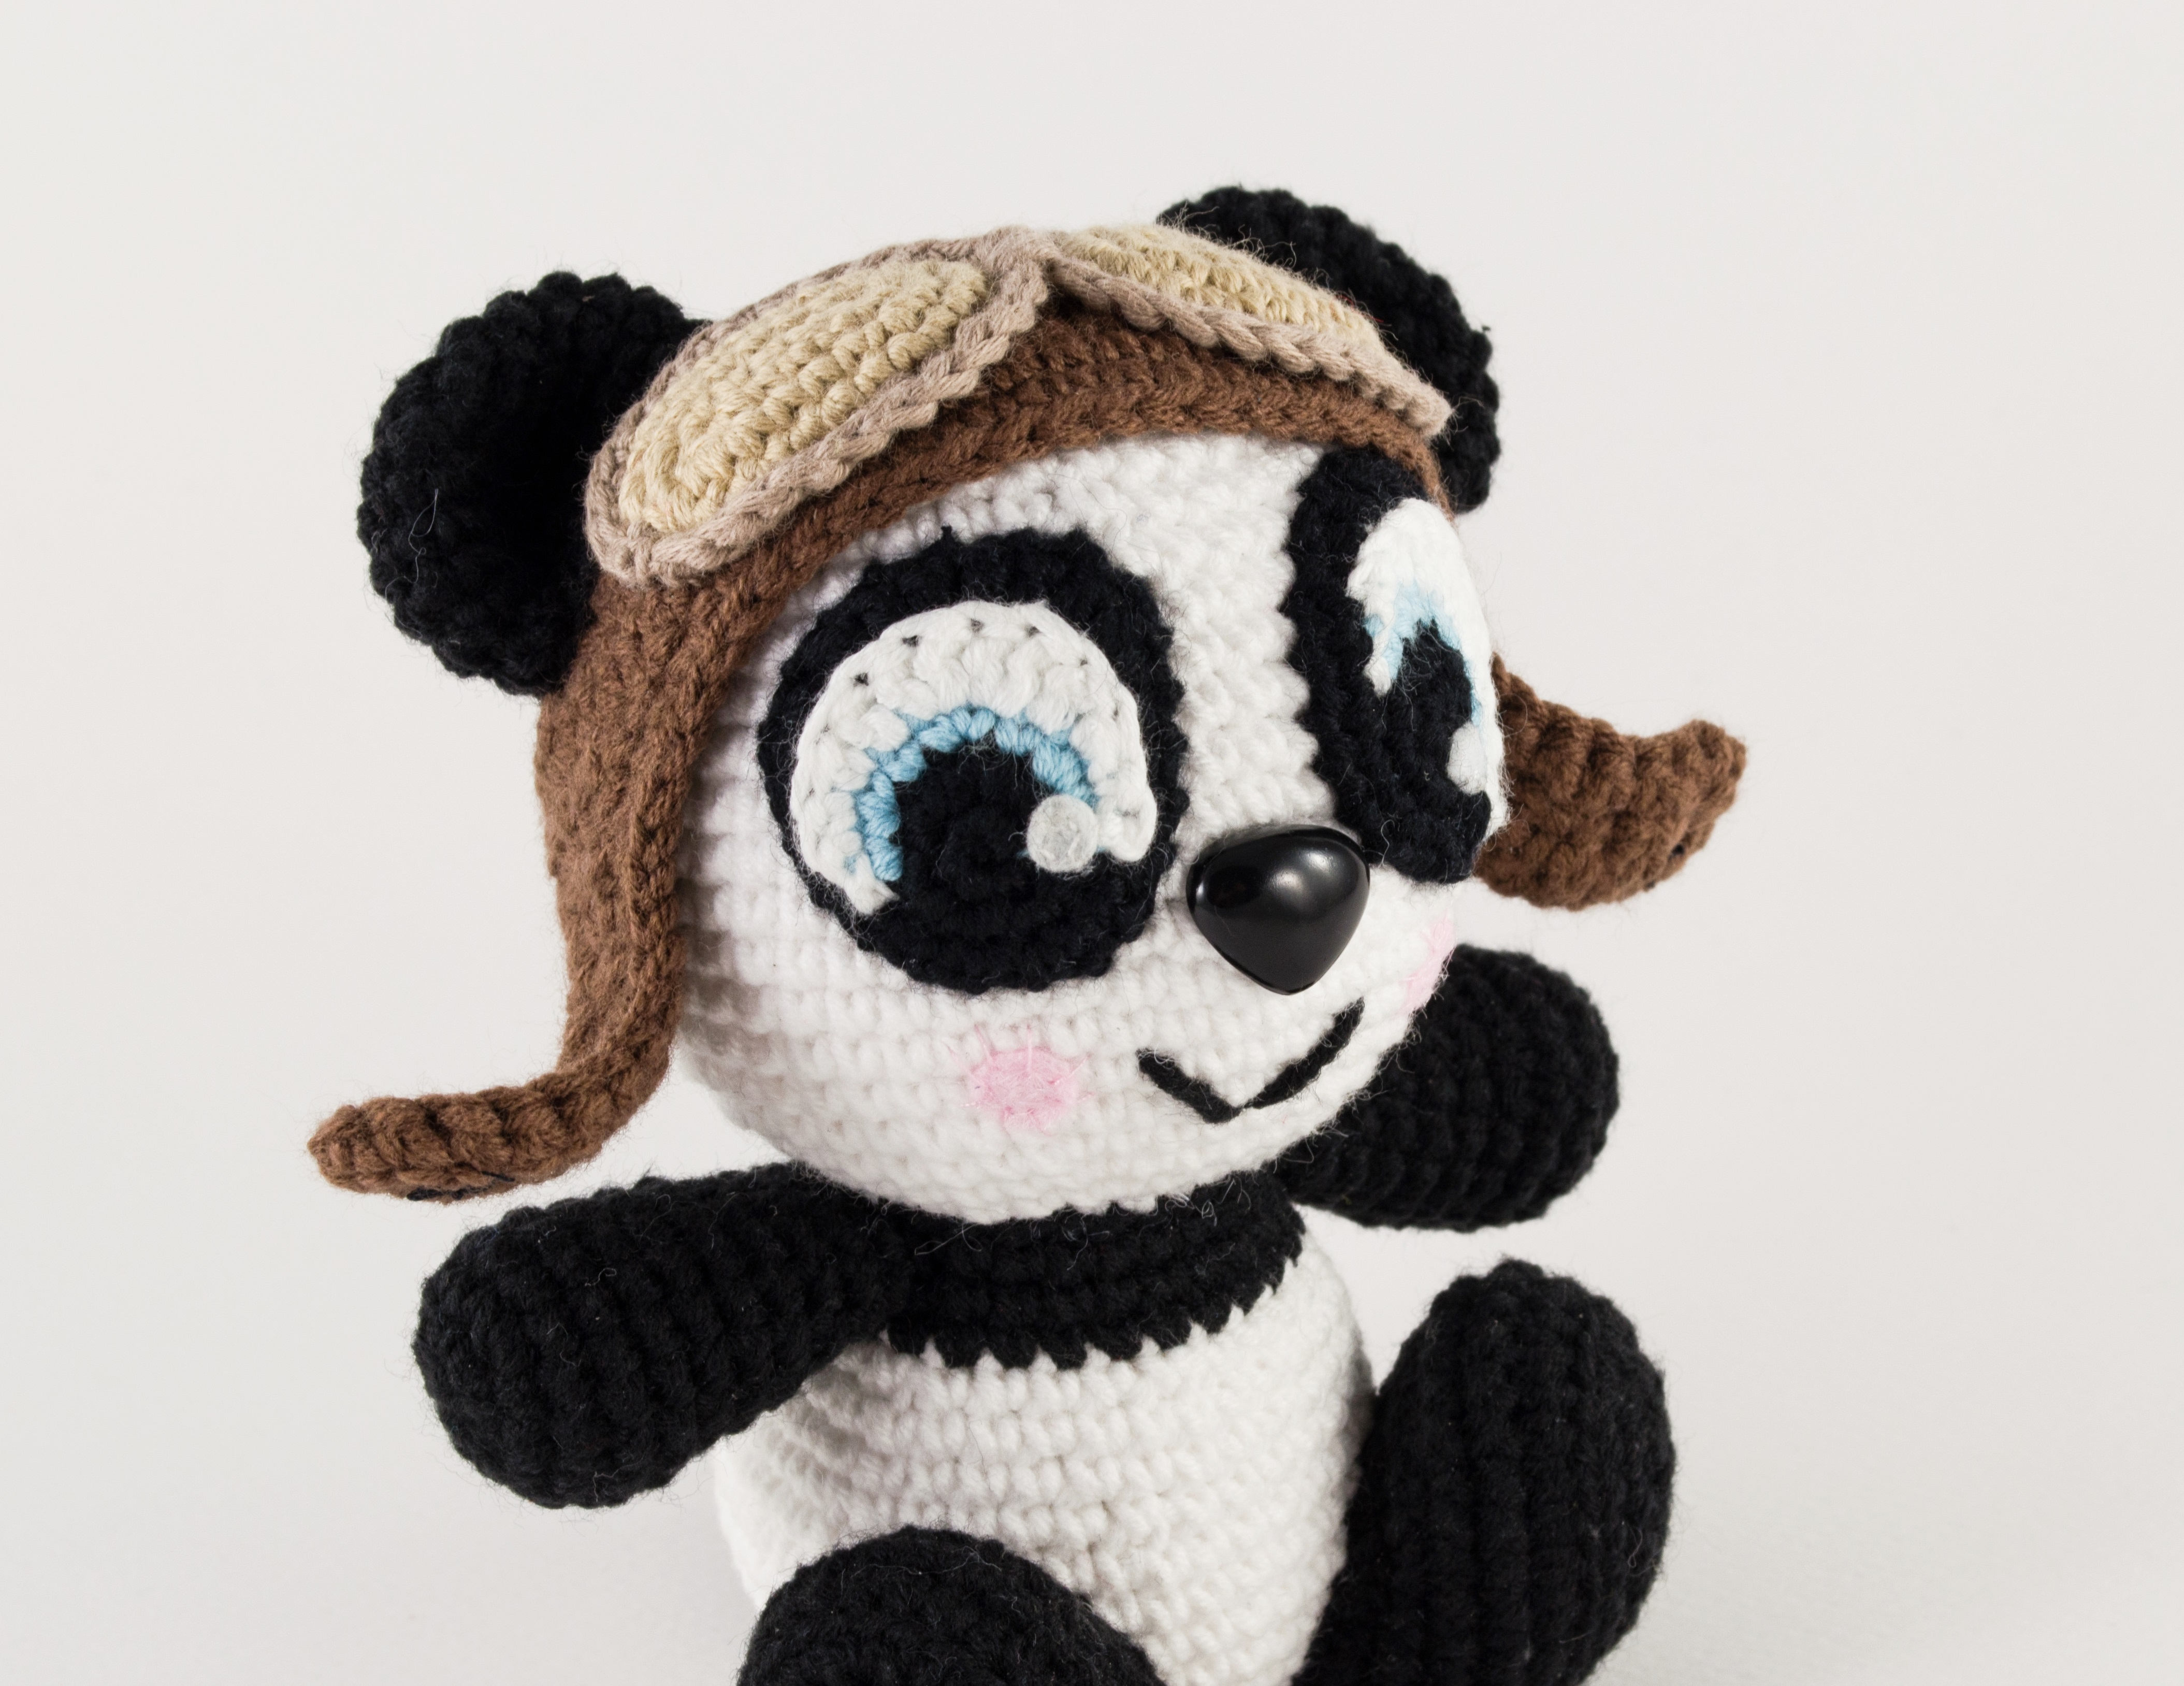 crochet panda close up view